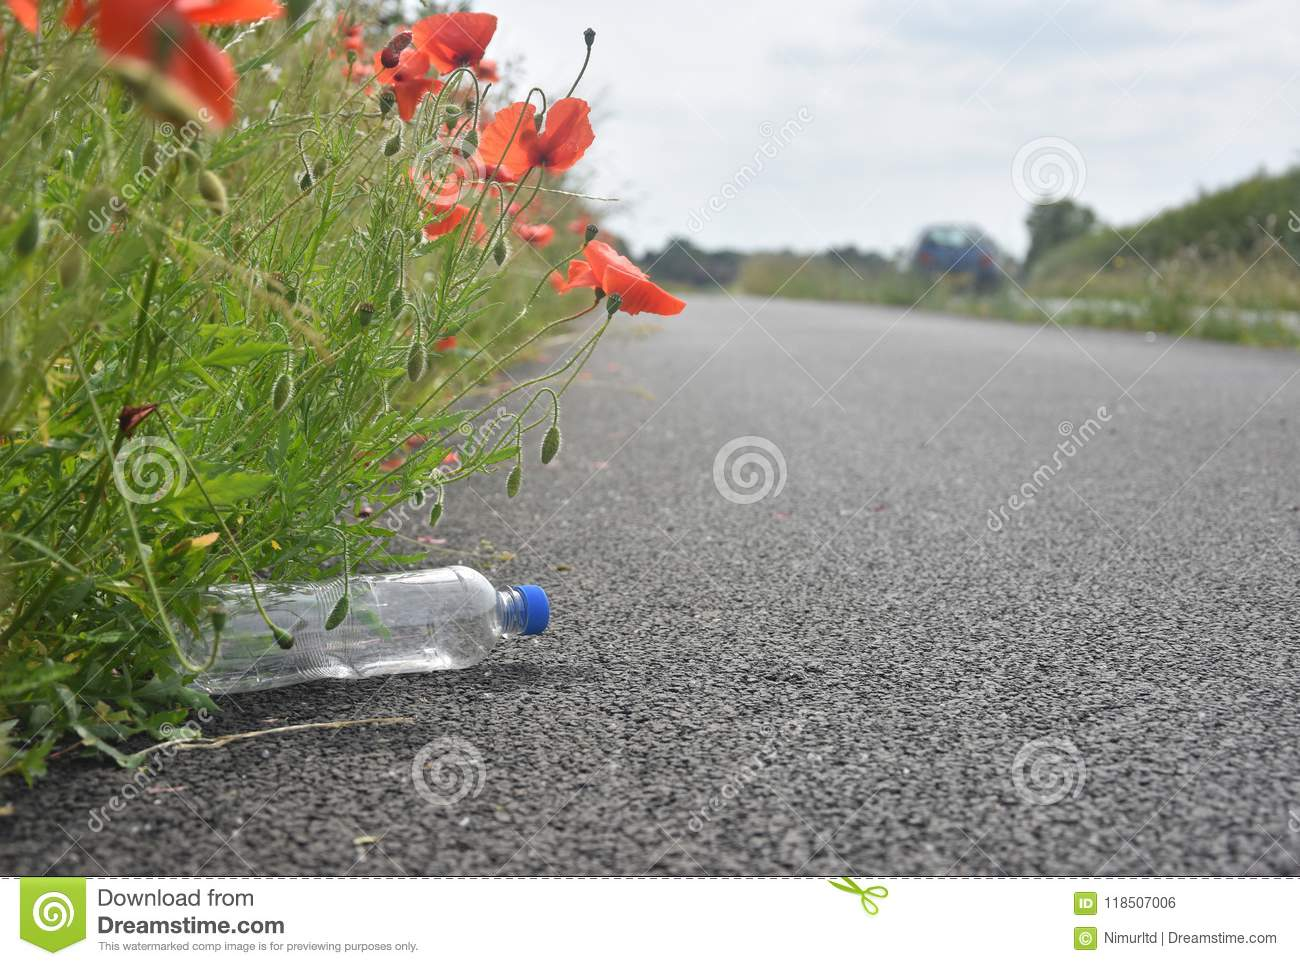 Discarded plastic bottle lying at path side amongst poppy flower discarded plastic bottle lying at path side amongst poppy flower mightylinksfo